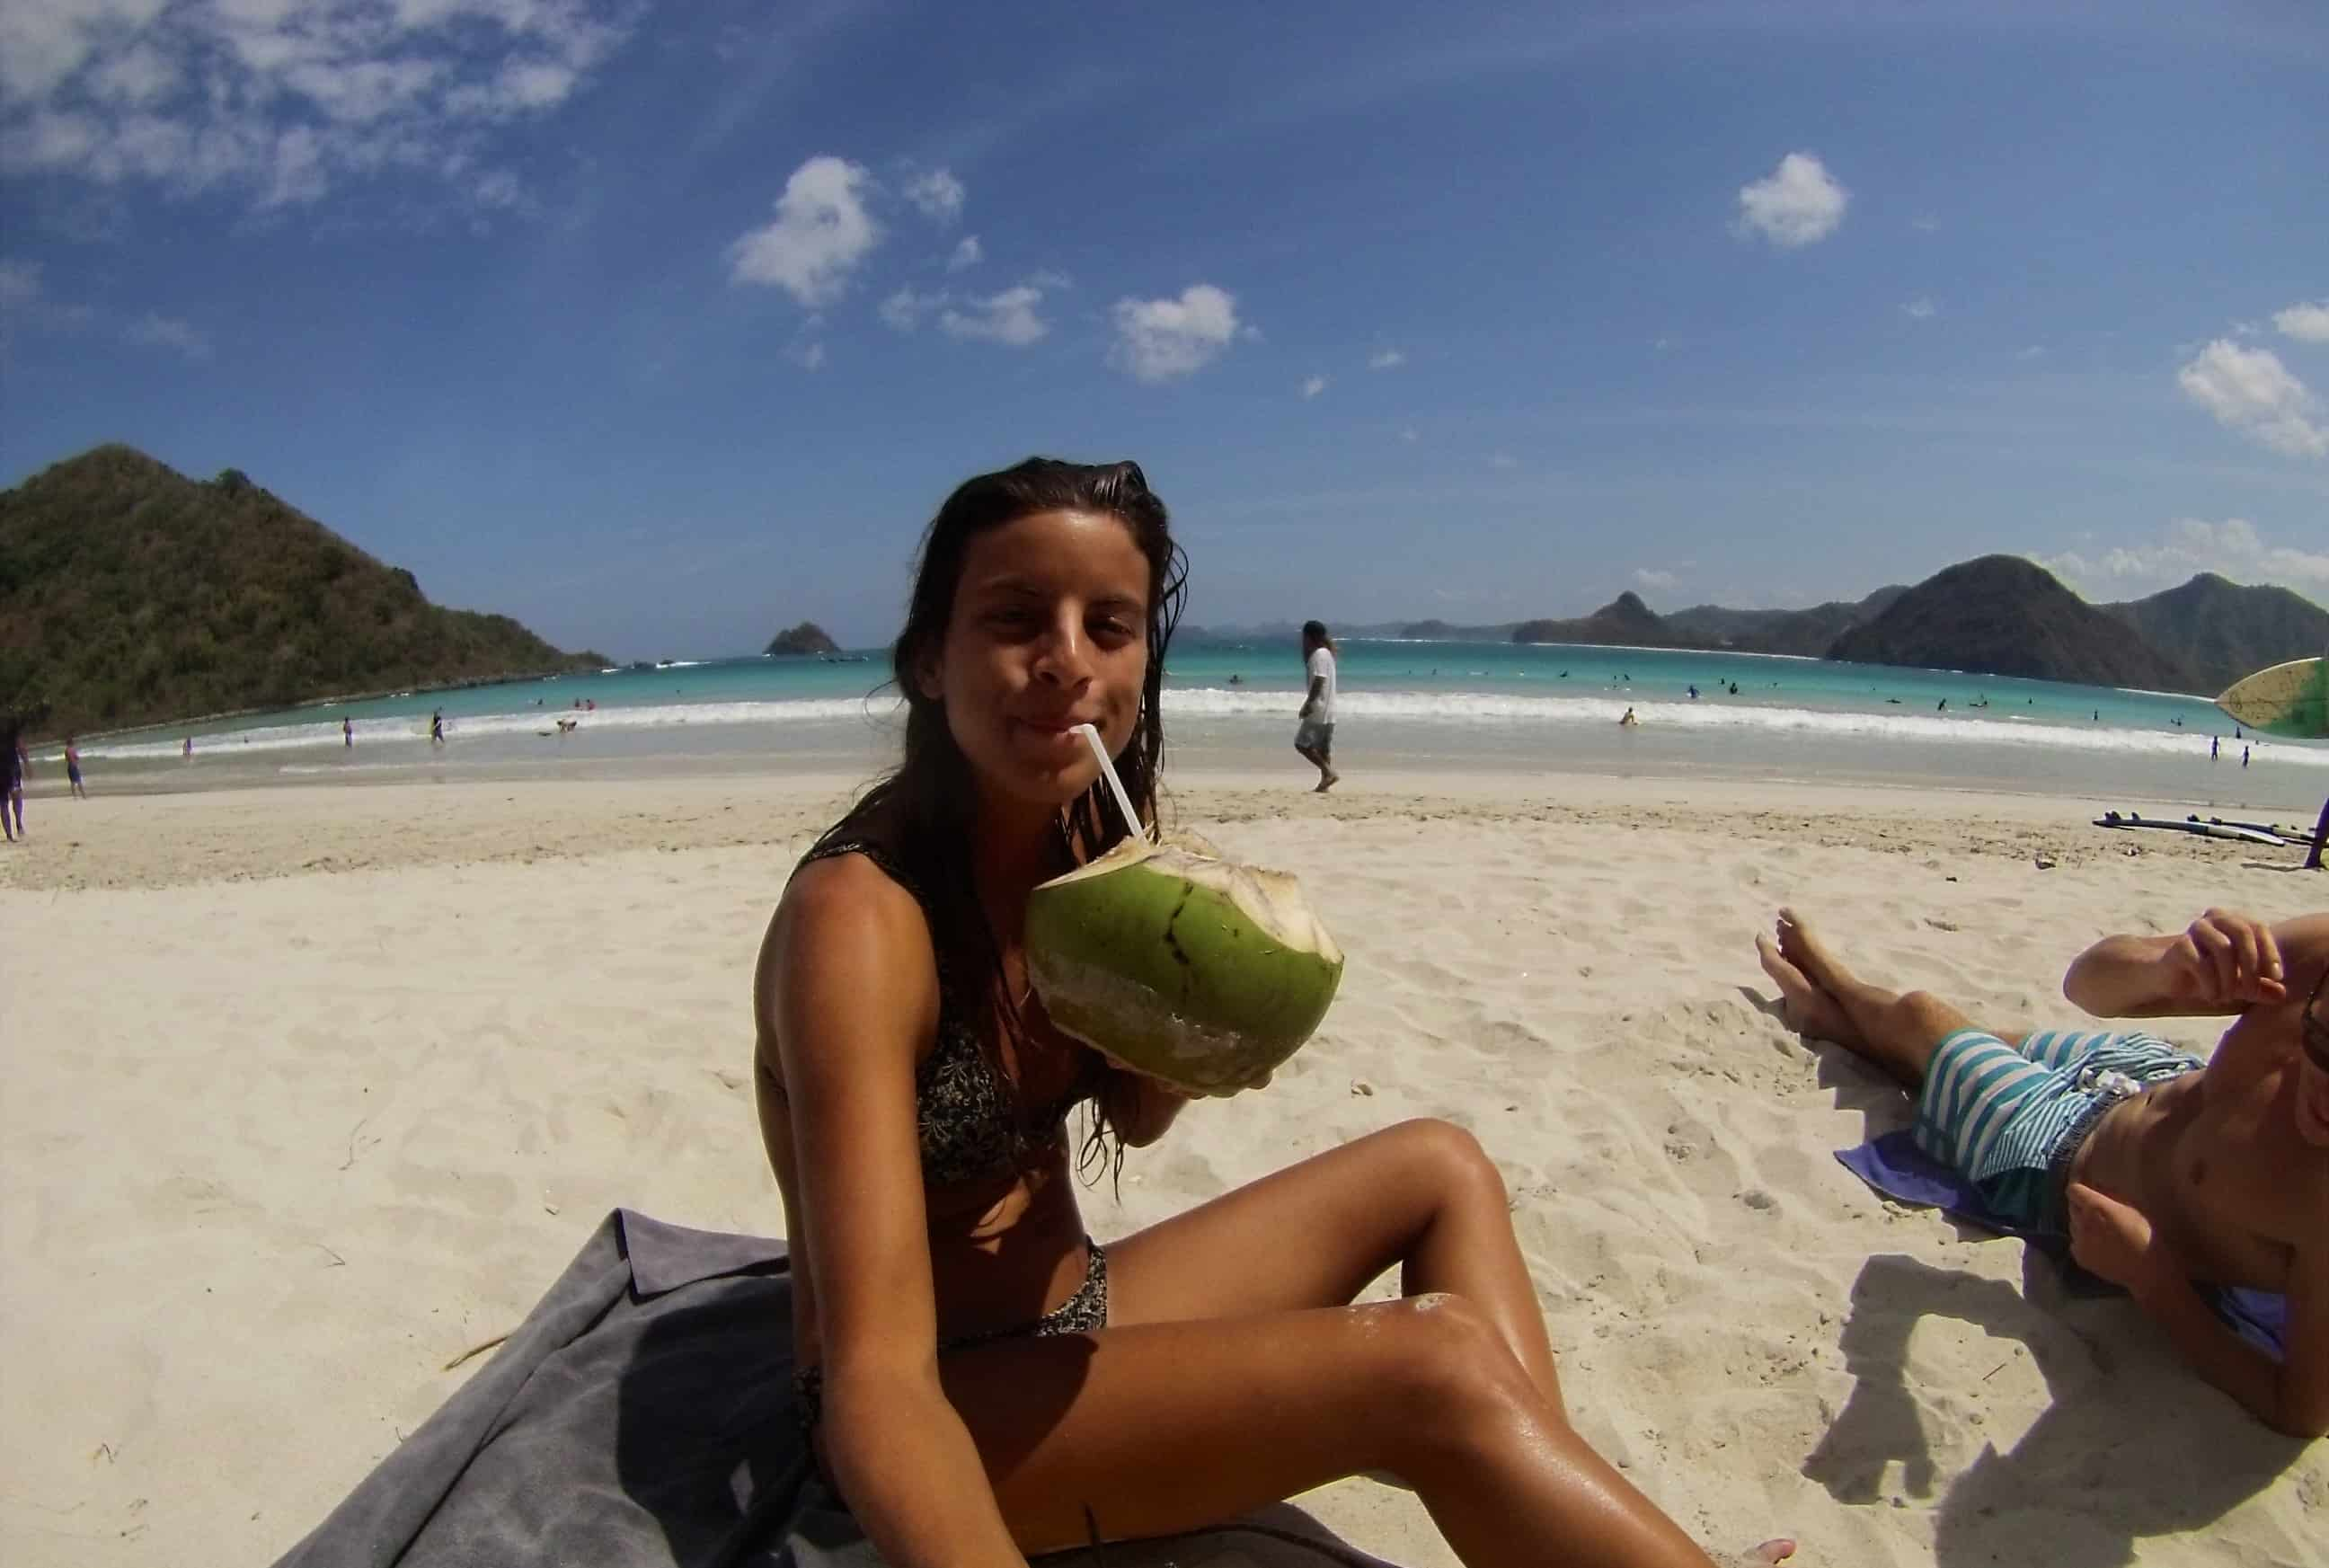 Coconut hangover remedies around the world